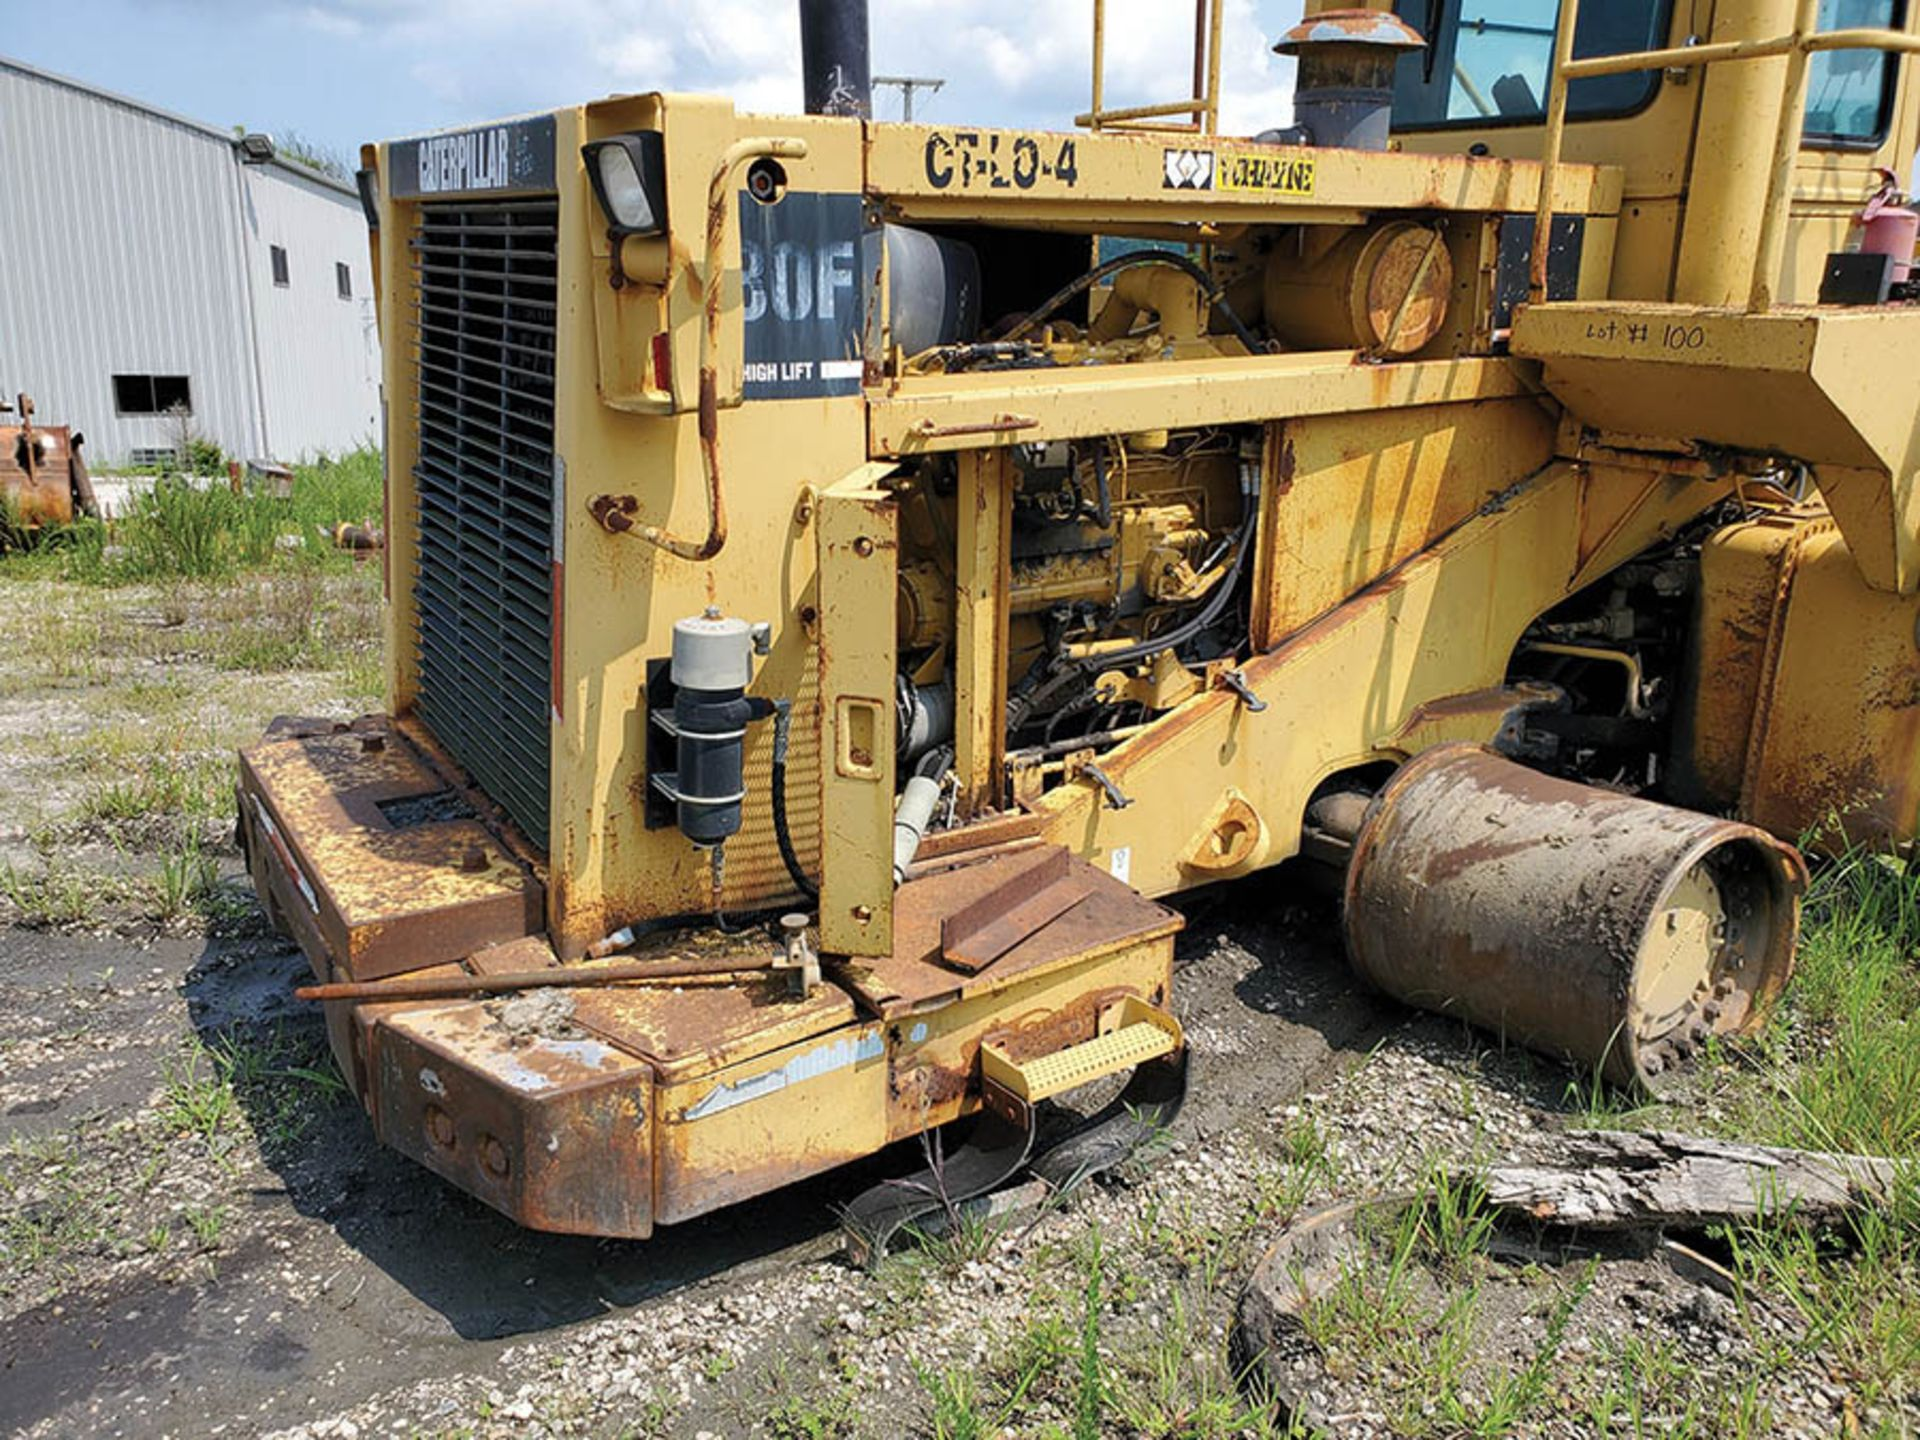 Lot 100 - CATERPILLAR 980F HIGH LIFT WHEEL LOADER, S/N: 8W00966, 79,444 HOURS SHOWING, CAT 6-CYLINDER TURBO